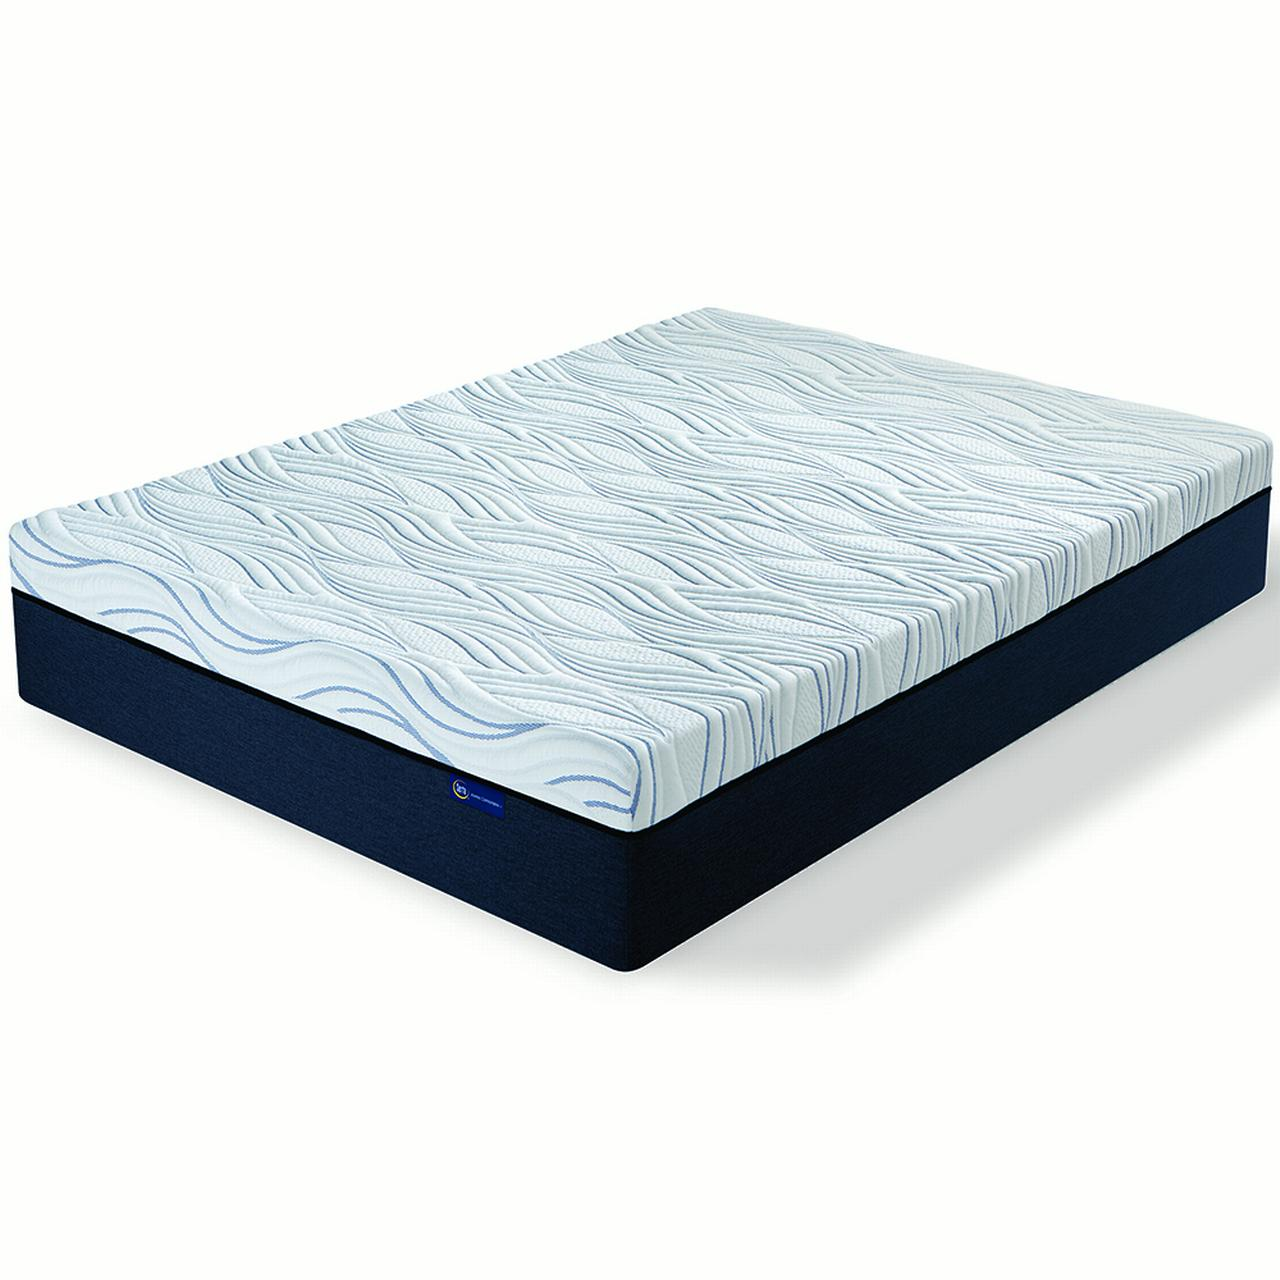 "Serta 771448-8060 12"" Perfect Sleeper Express Memory Foam Mattress in a Box - King"